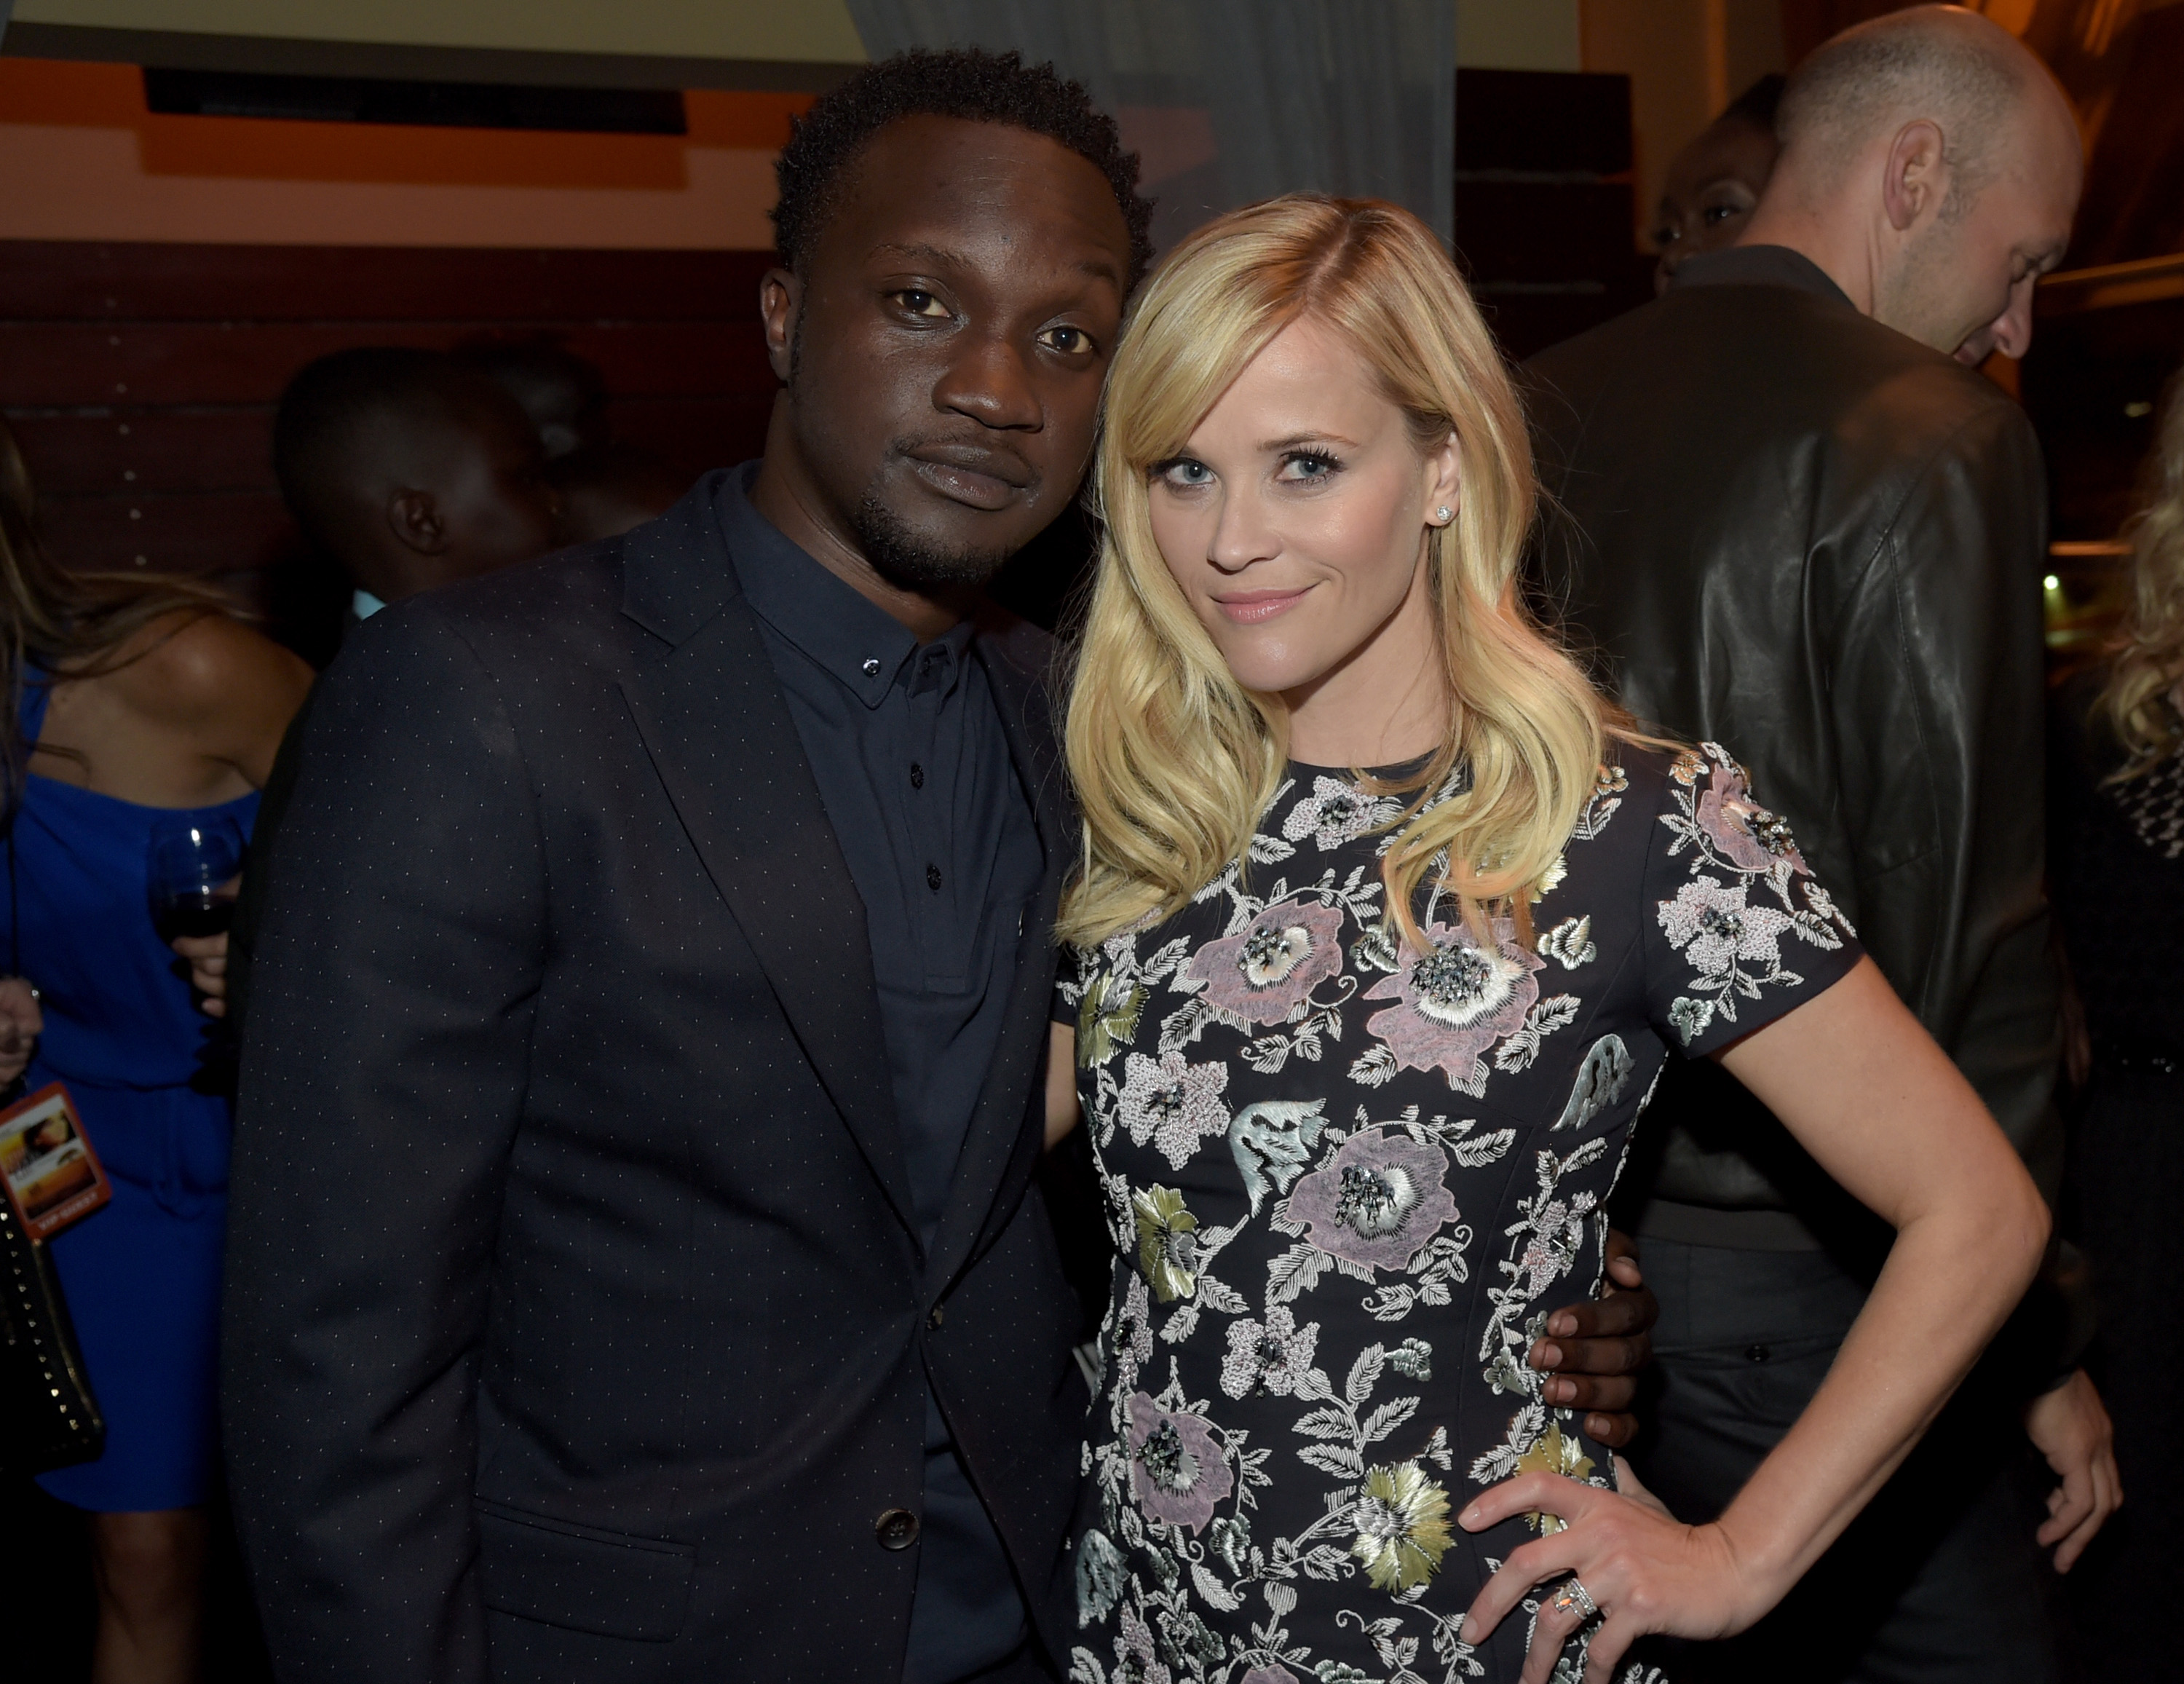 Actors Arnold Oceng and Reese Witherspoon attend  The Good Lie  after party at Cabana on Sept. 19, 2014 in Nashville, Tennessee.